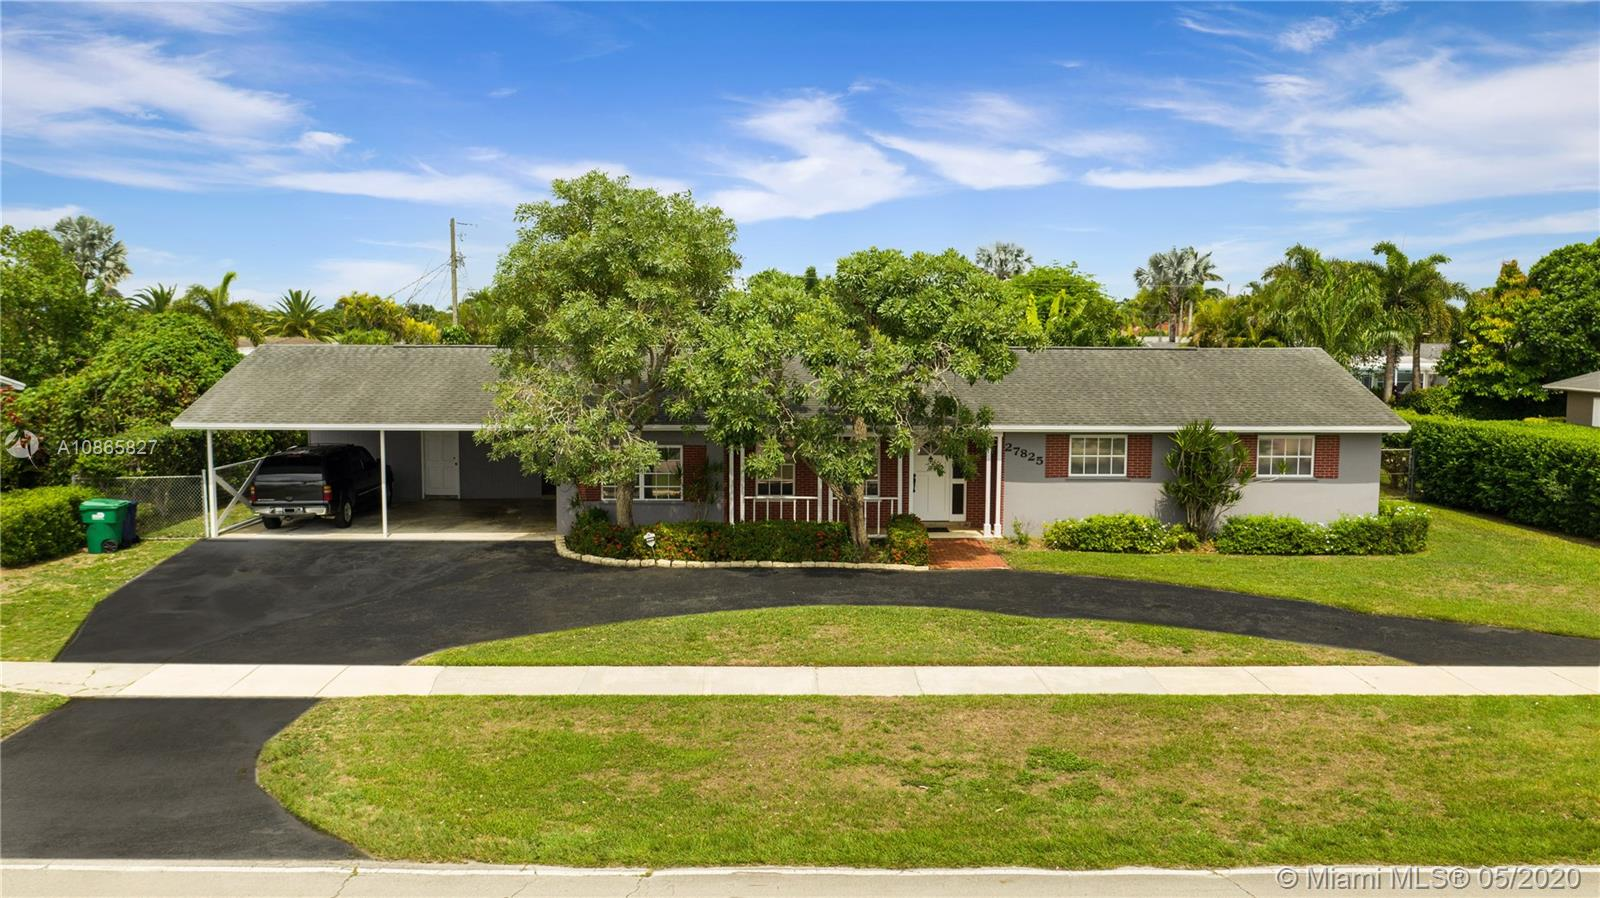 27825 SW 162nd Ave, Homestead, FL 33031 - Homestead, FL real estate listing